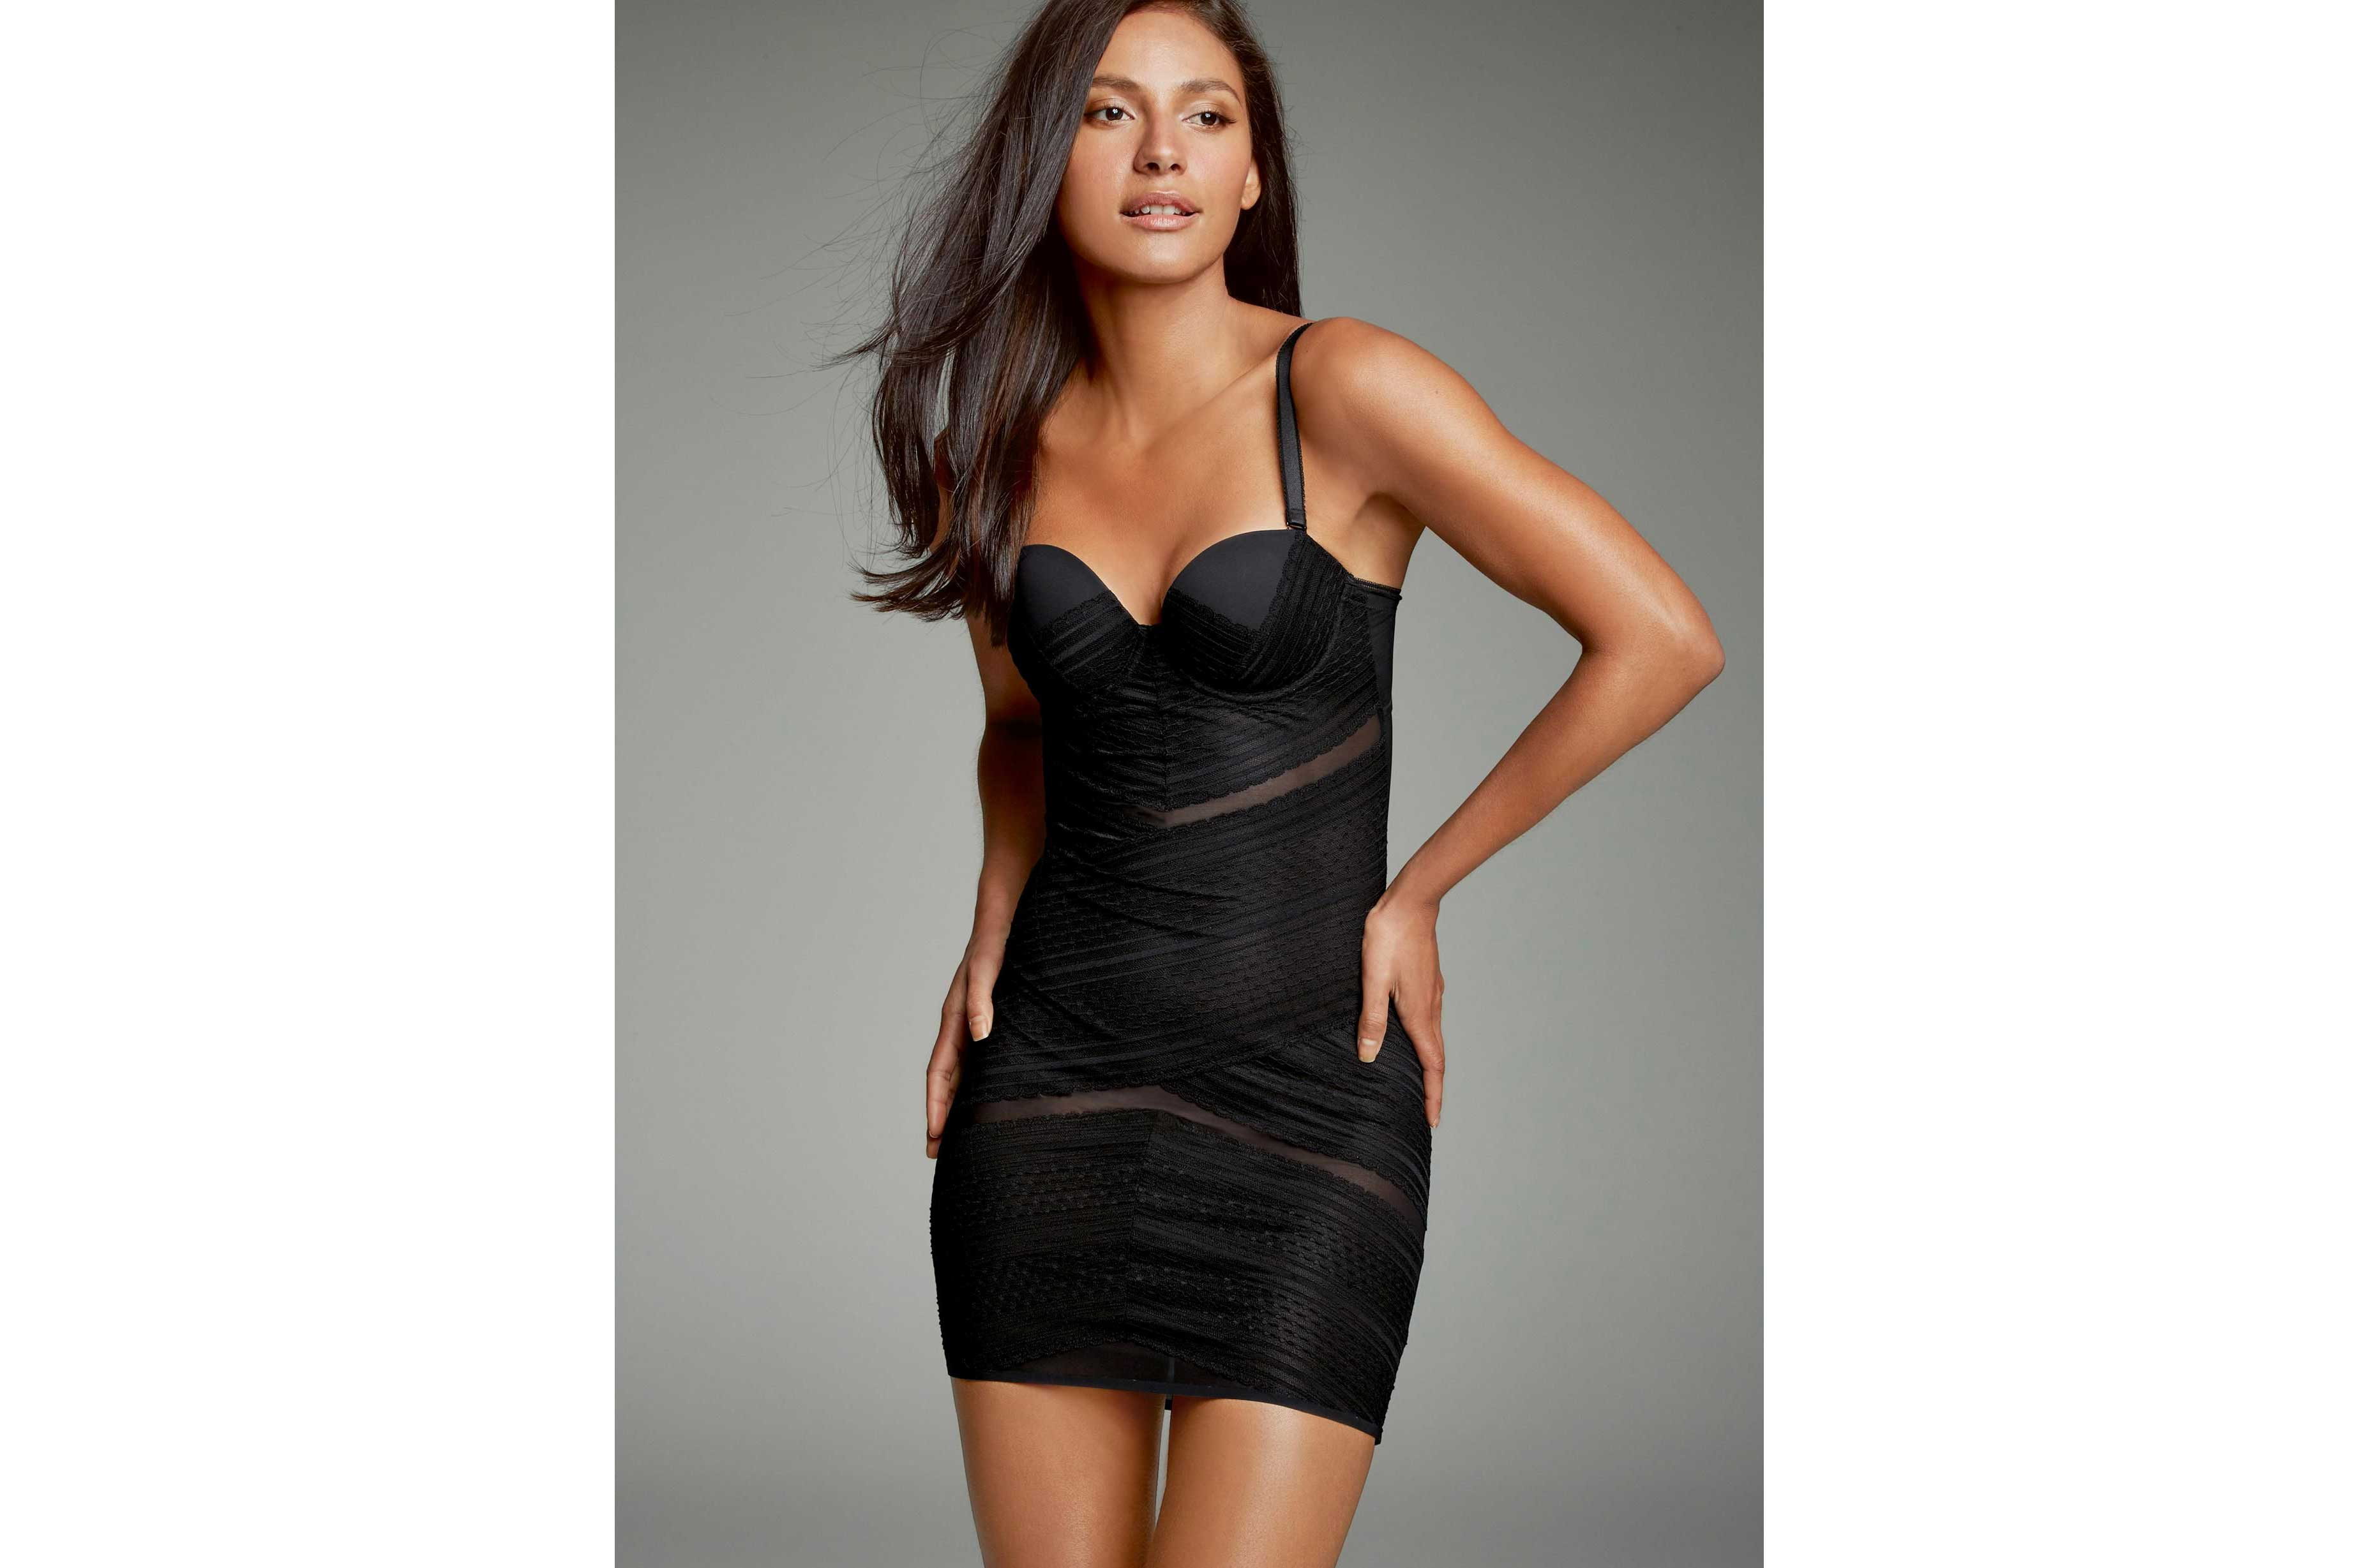 b8912d68429 If you re looking to smooth lumps and bumps from under a fitted dress